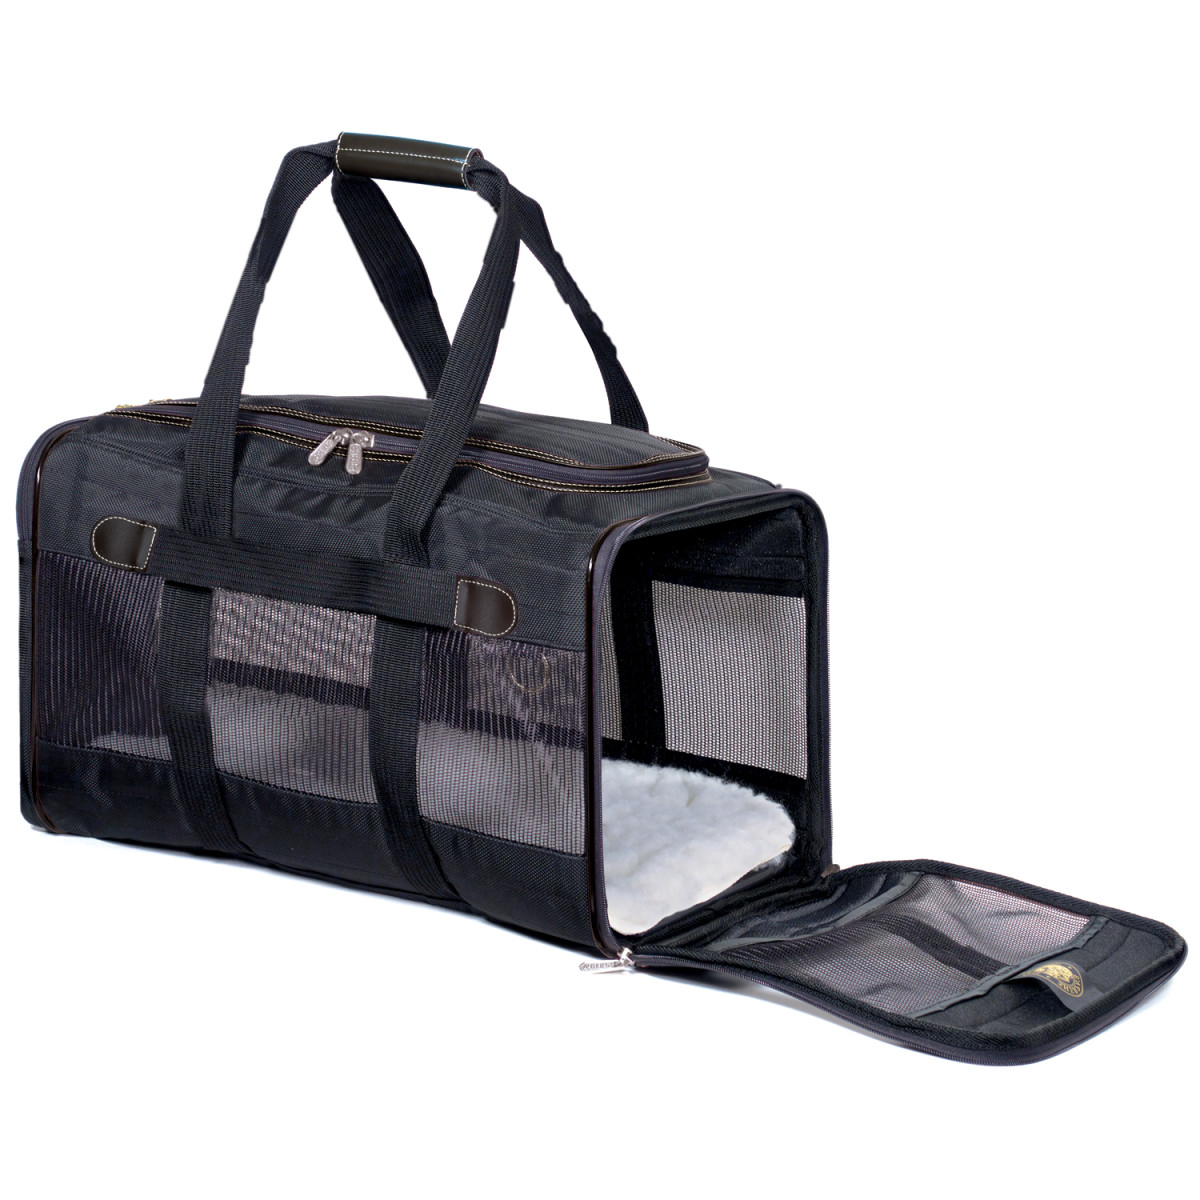 The Sherpa Original Deluxe Pet Carrier (Large), shown in Black.